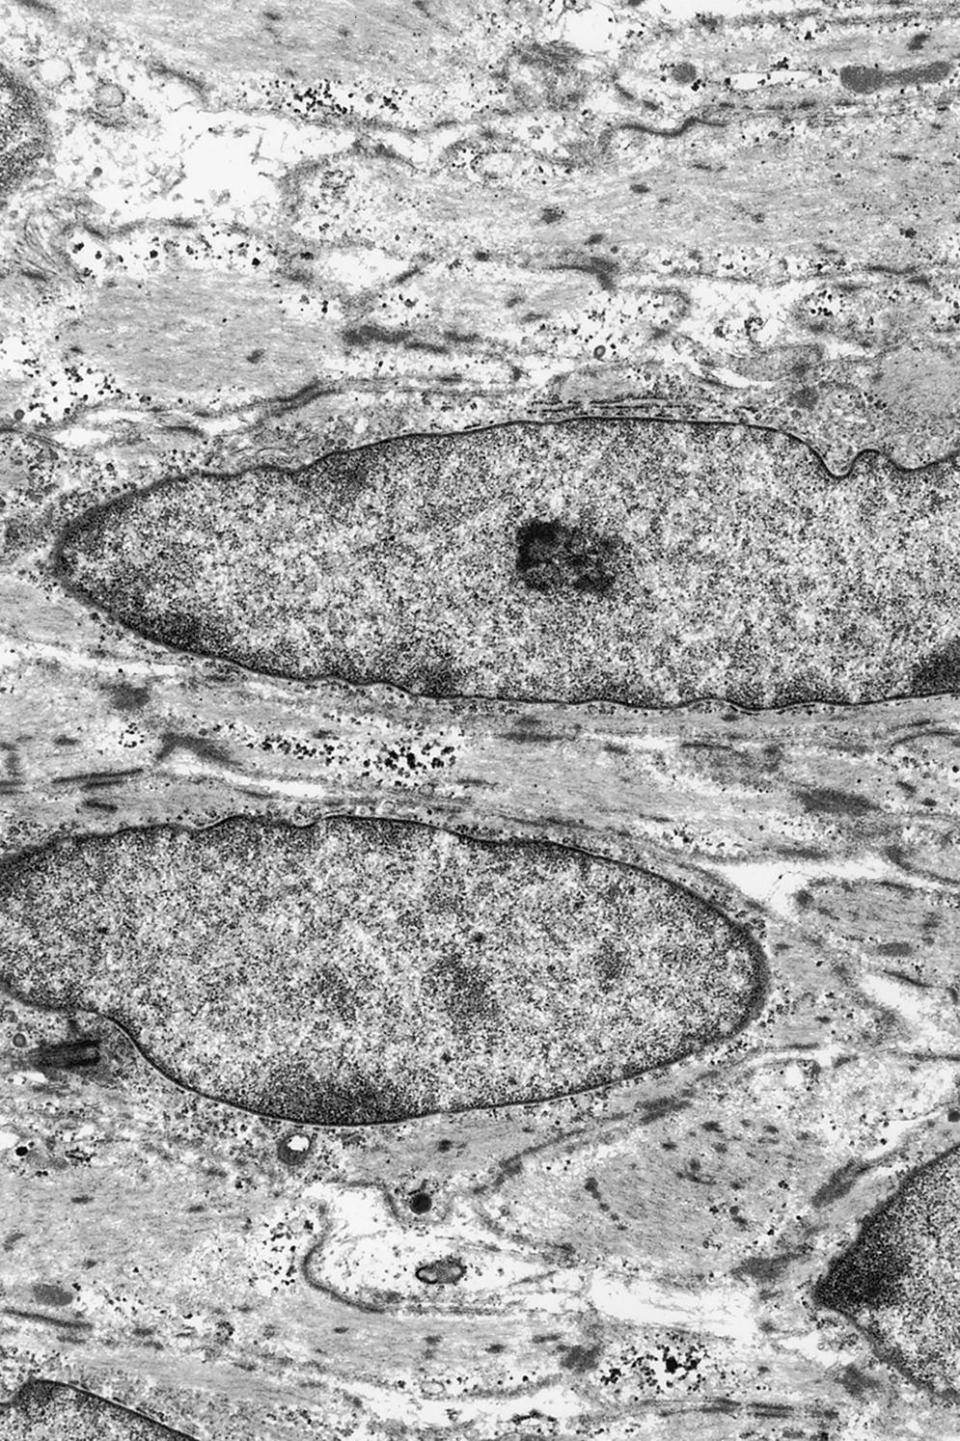 Micrograph of the ultrastructural features of smooth muscle differentiation in gastrointestinal stromal tumor of horse with cells exhibiting bundles of cytoplasmic filaments associated with dense bodies.